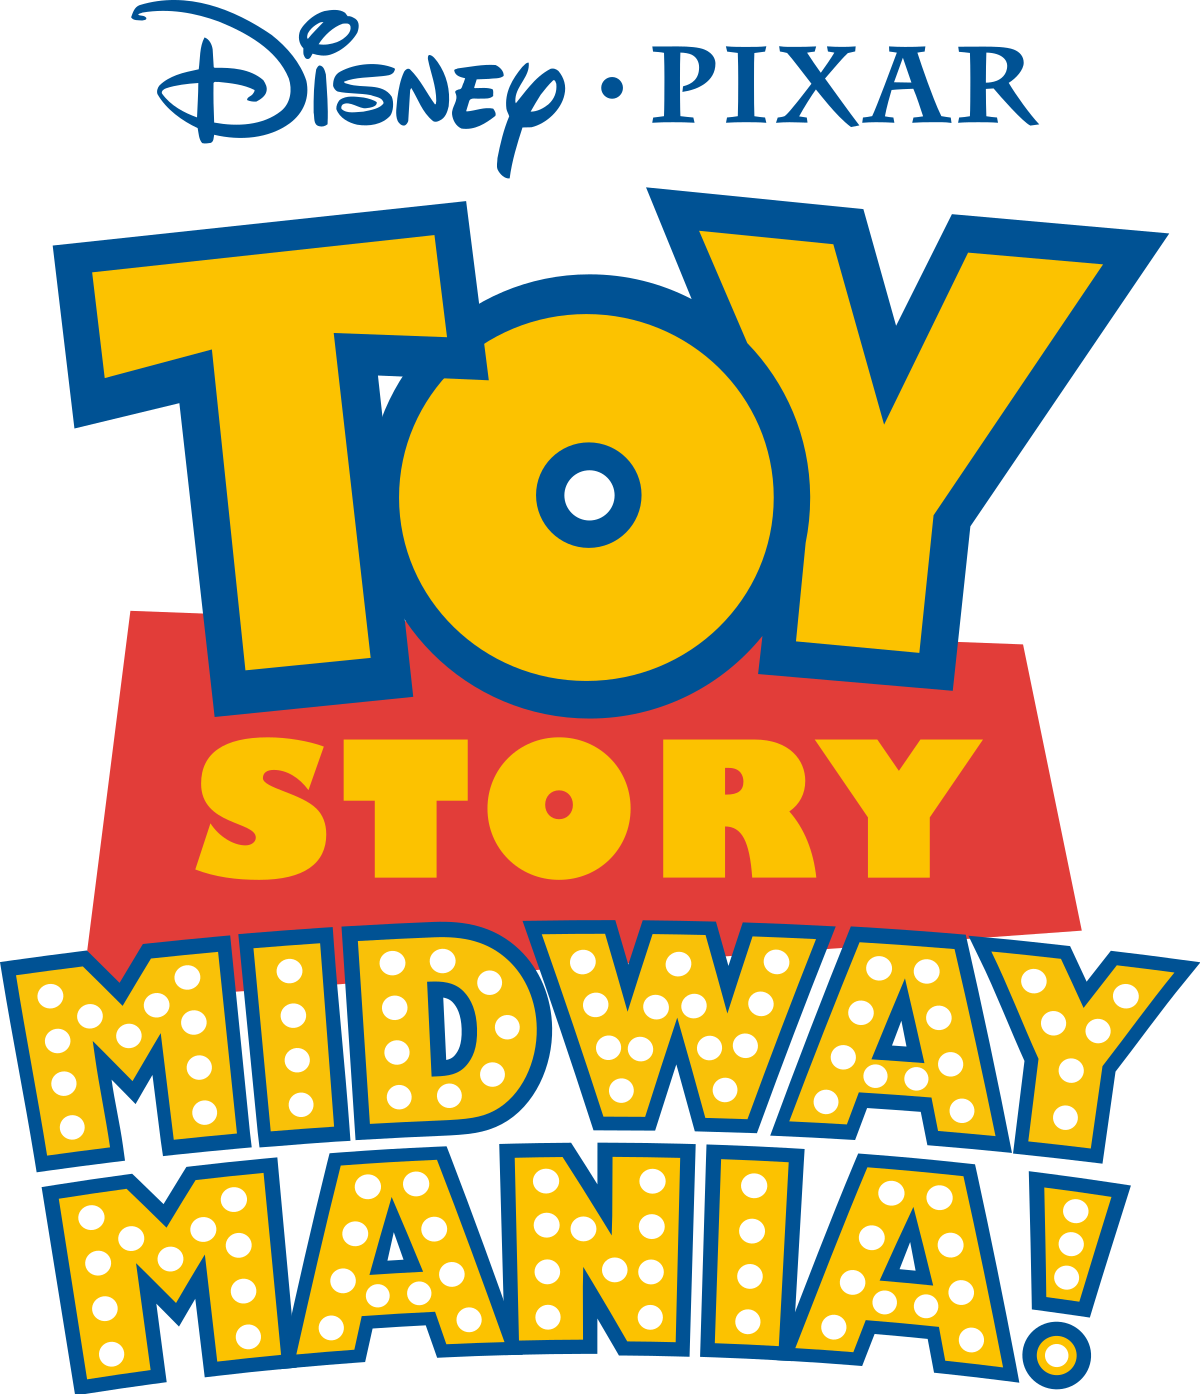 Marquee clipart hollywood. Toy story midway mania